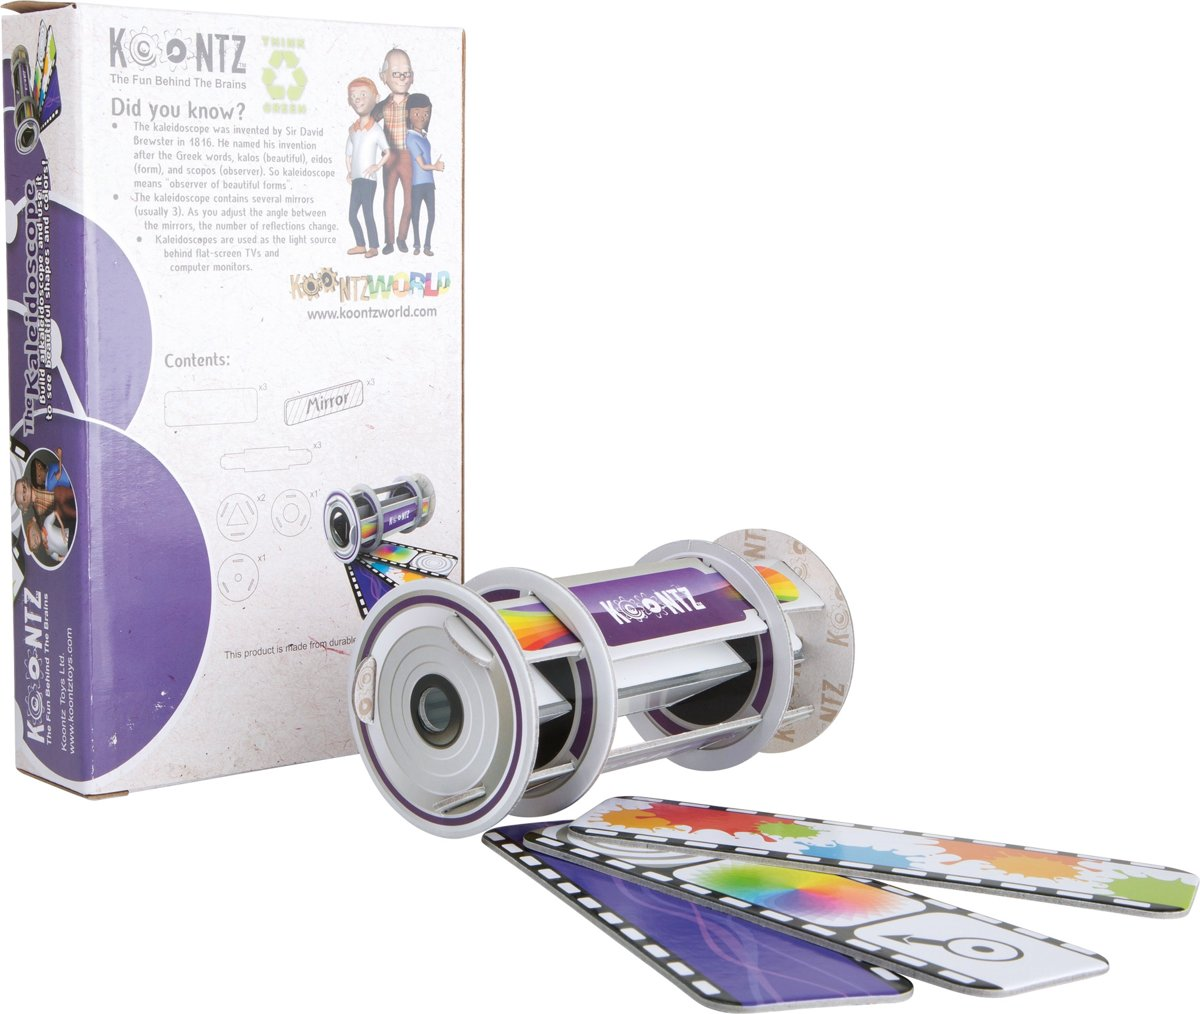 Construction Kit Kaleidoscope